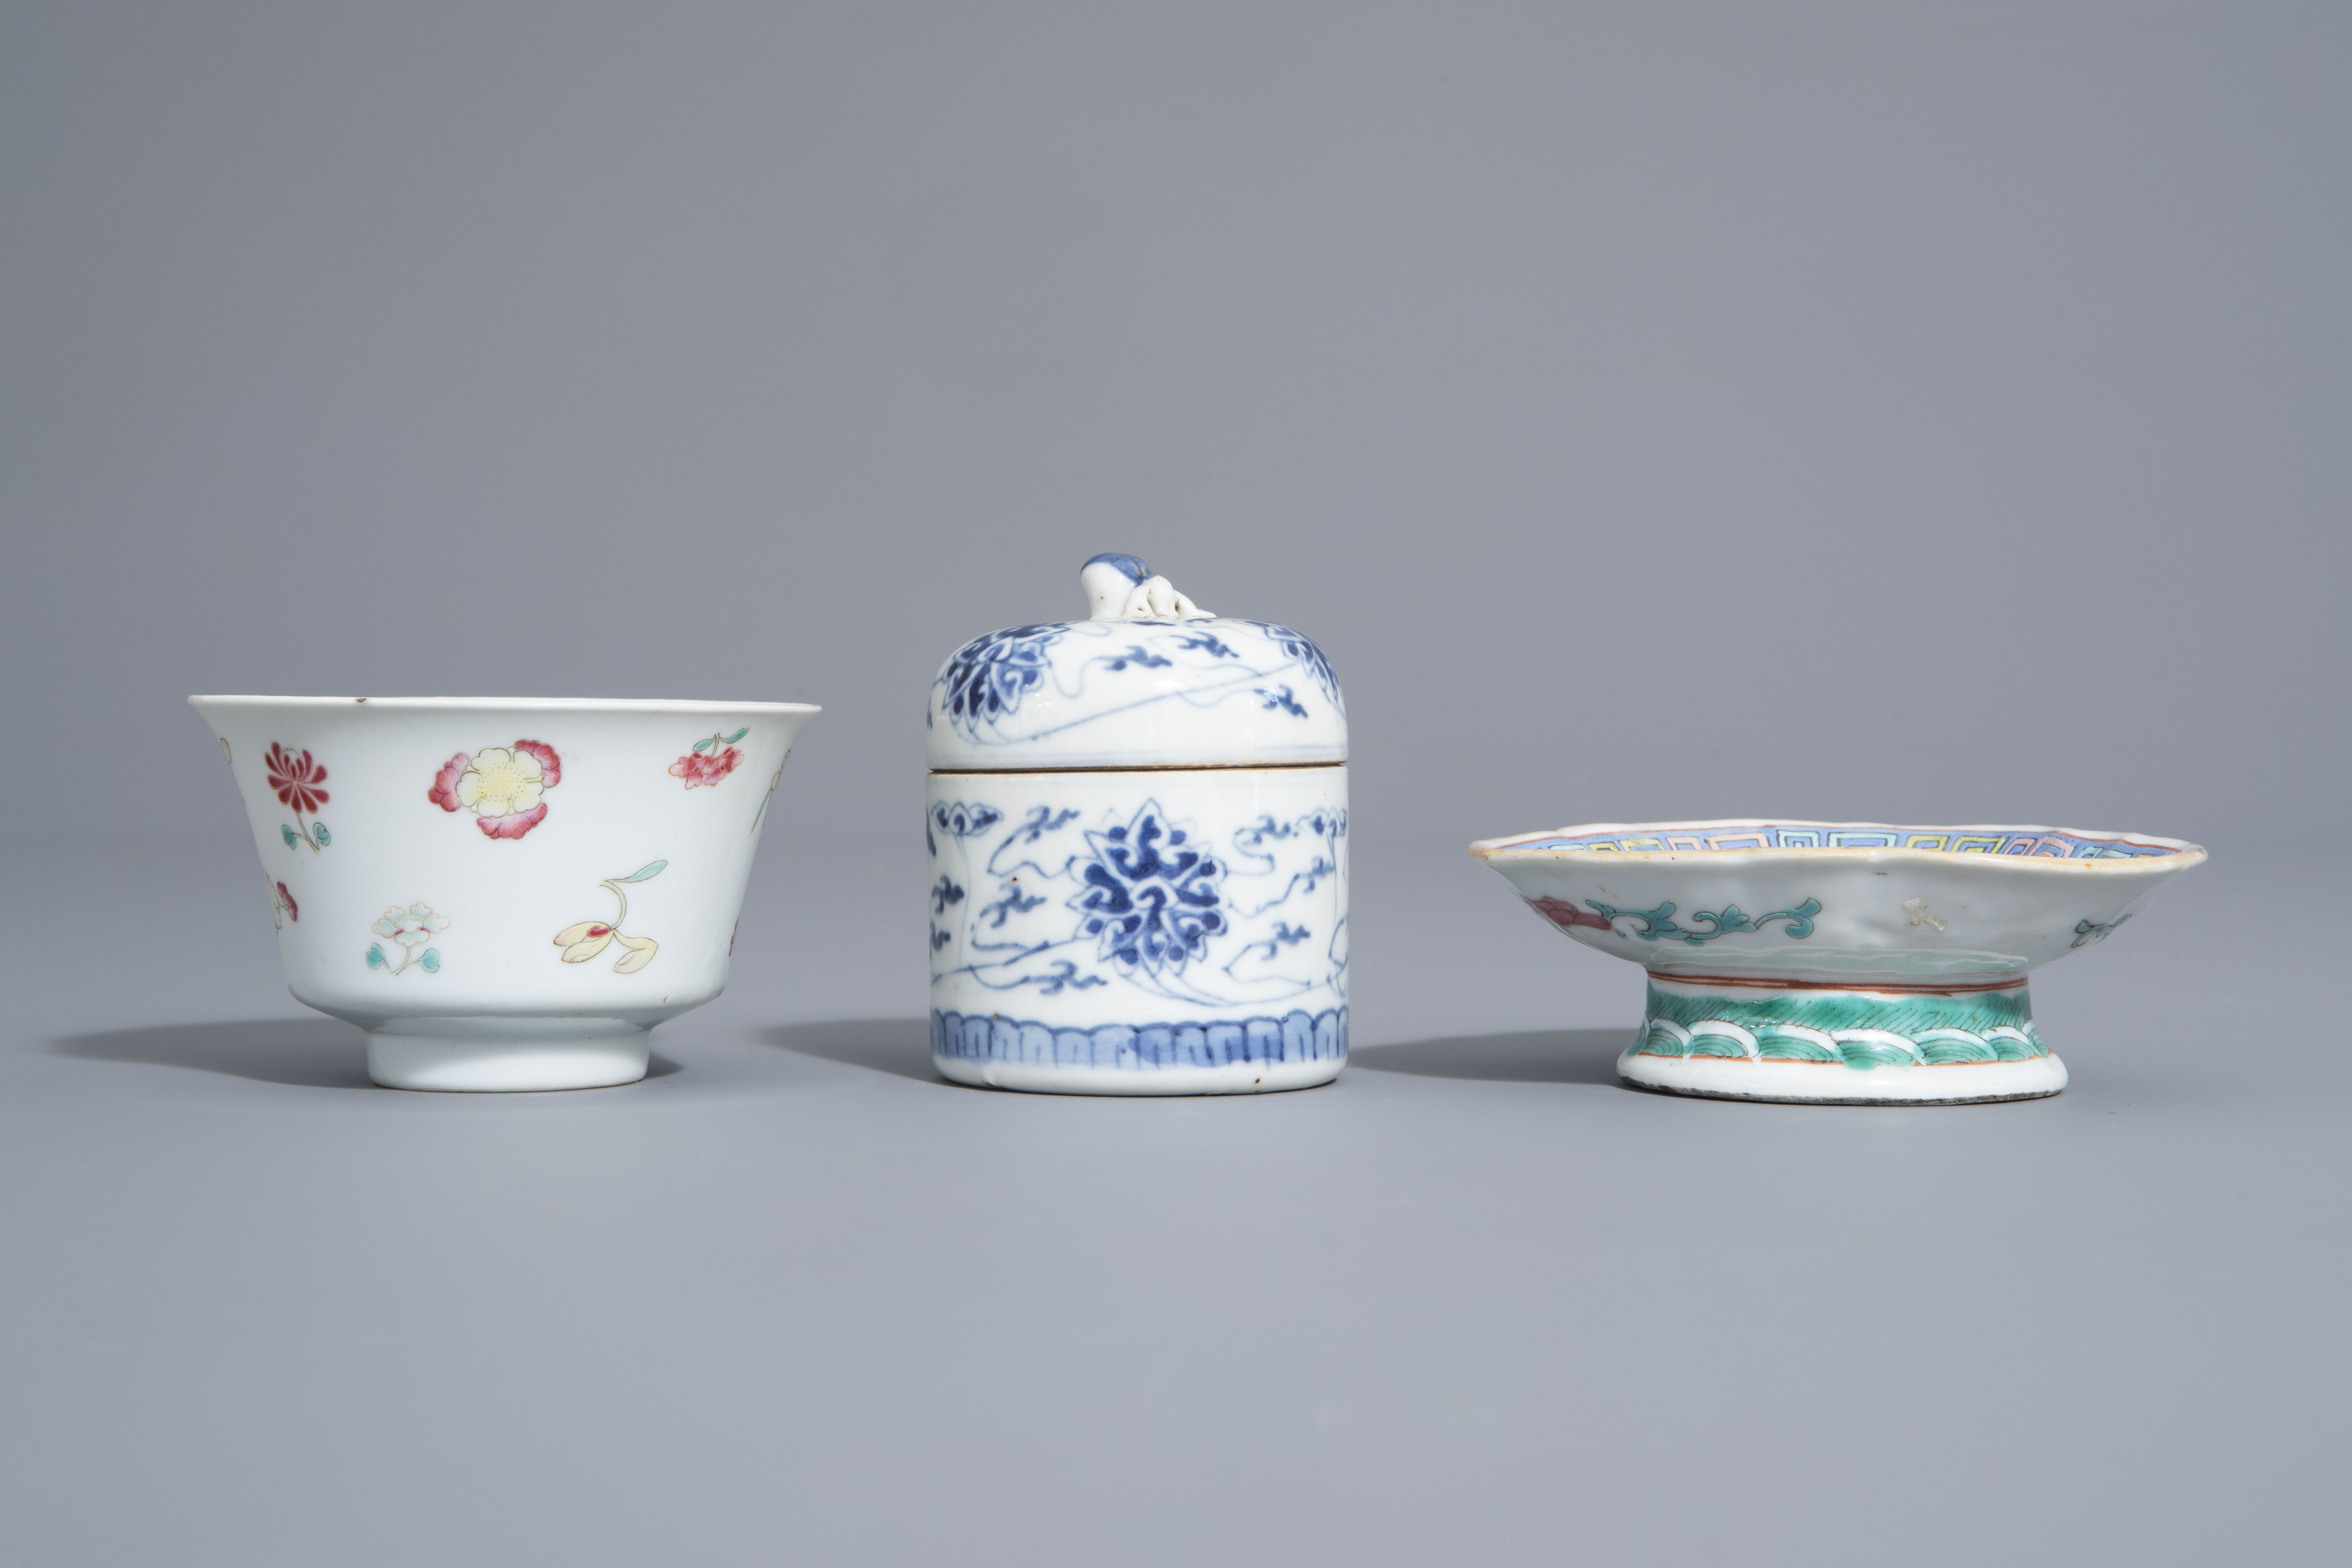 A varied collection of Chinese blue and white and famille rose porcelain, 19th/20th C. - Image 8 of 15